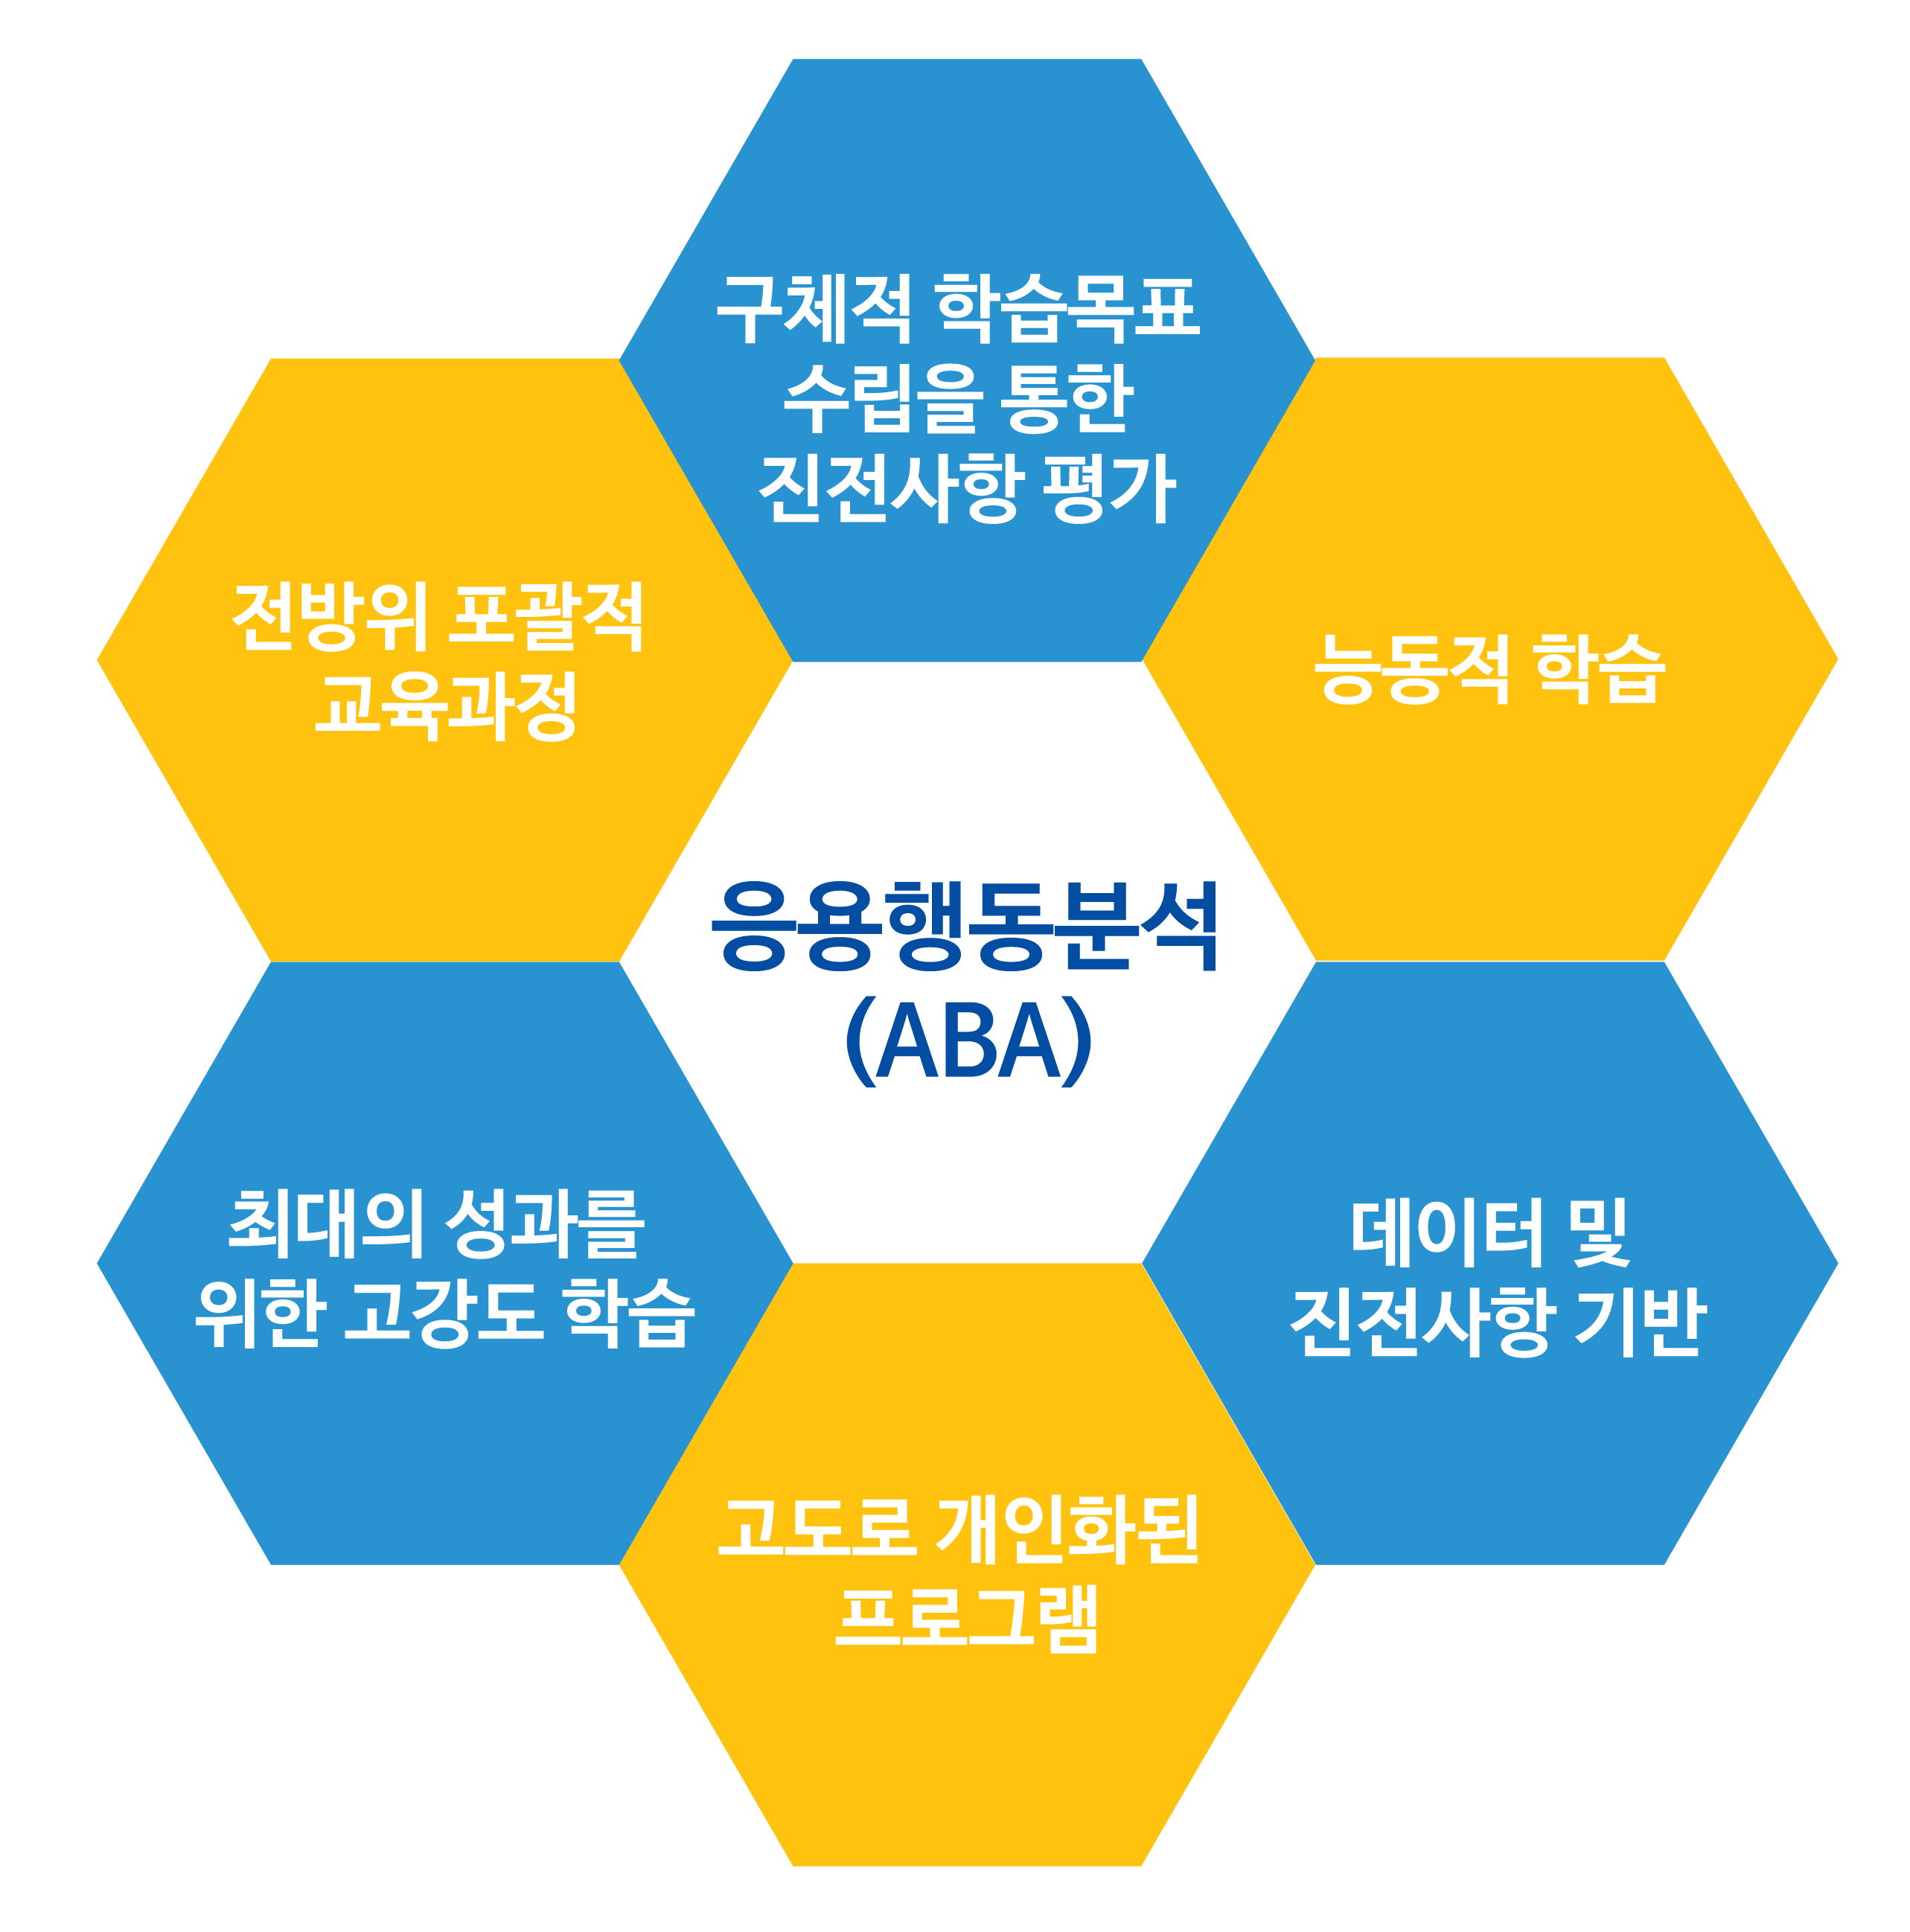 autism-partnership-effectiveness-aba-chart-korean-01